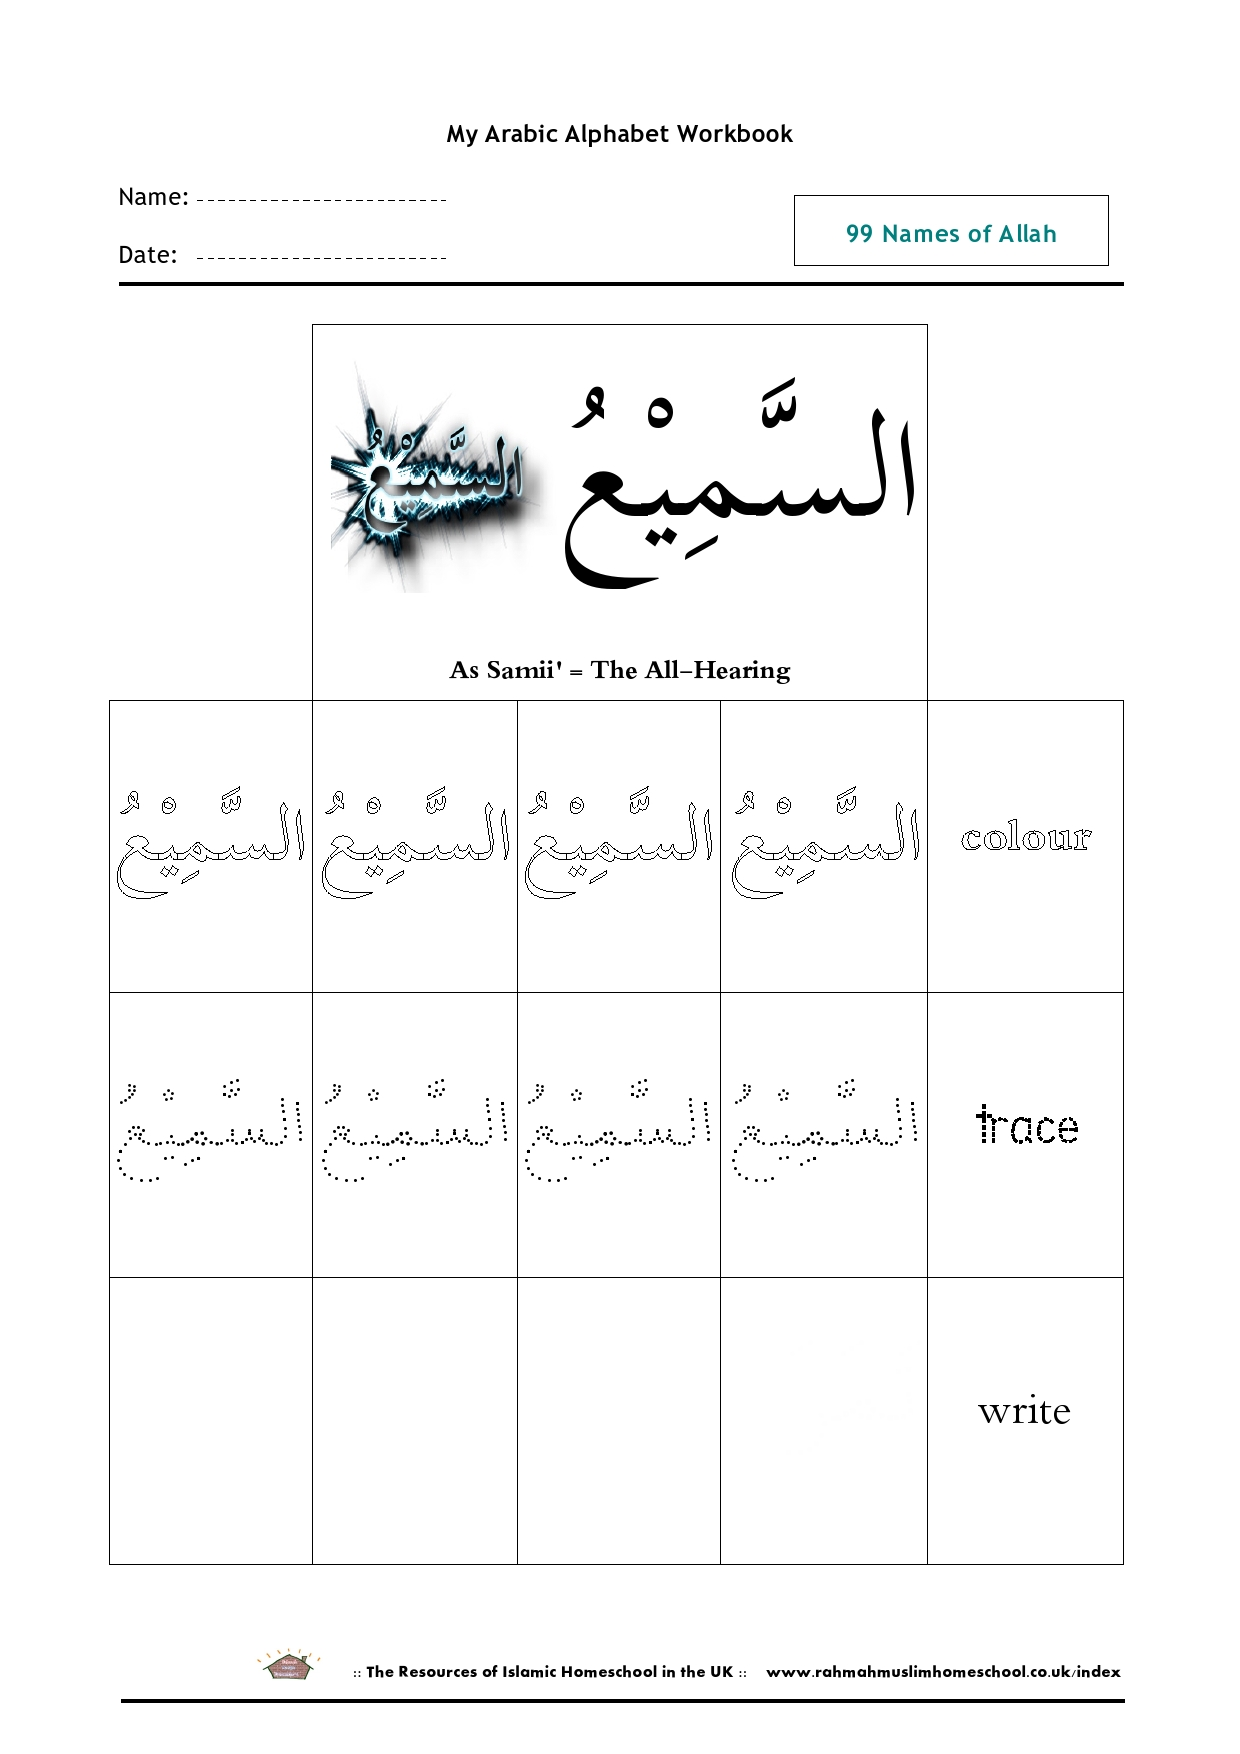 Free Arabic Worksheet The 99 Names Of Allah As Samii